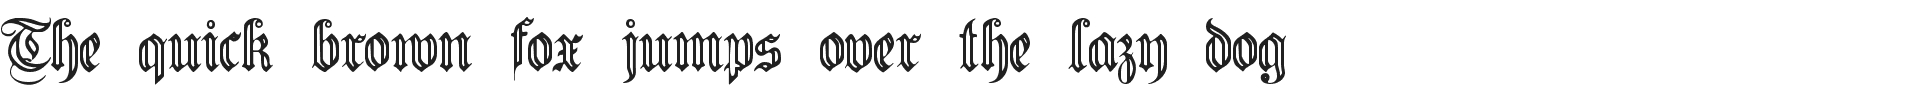 Free Germanic Font Fluted